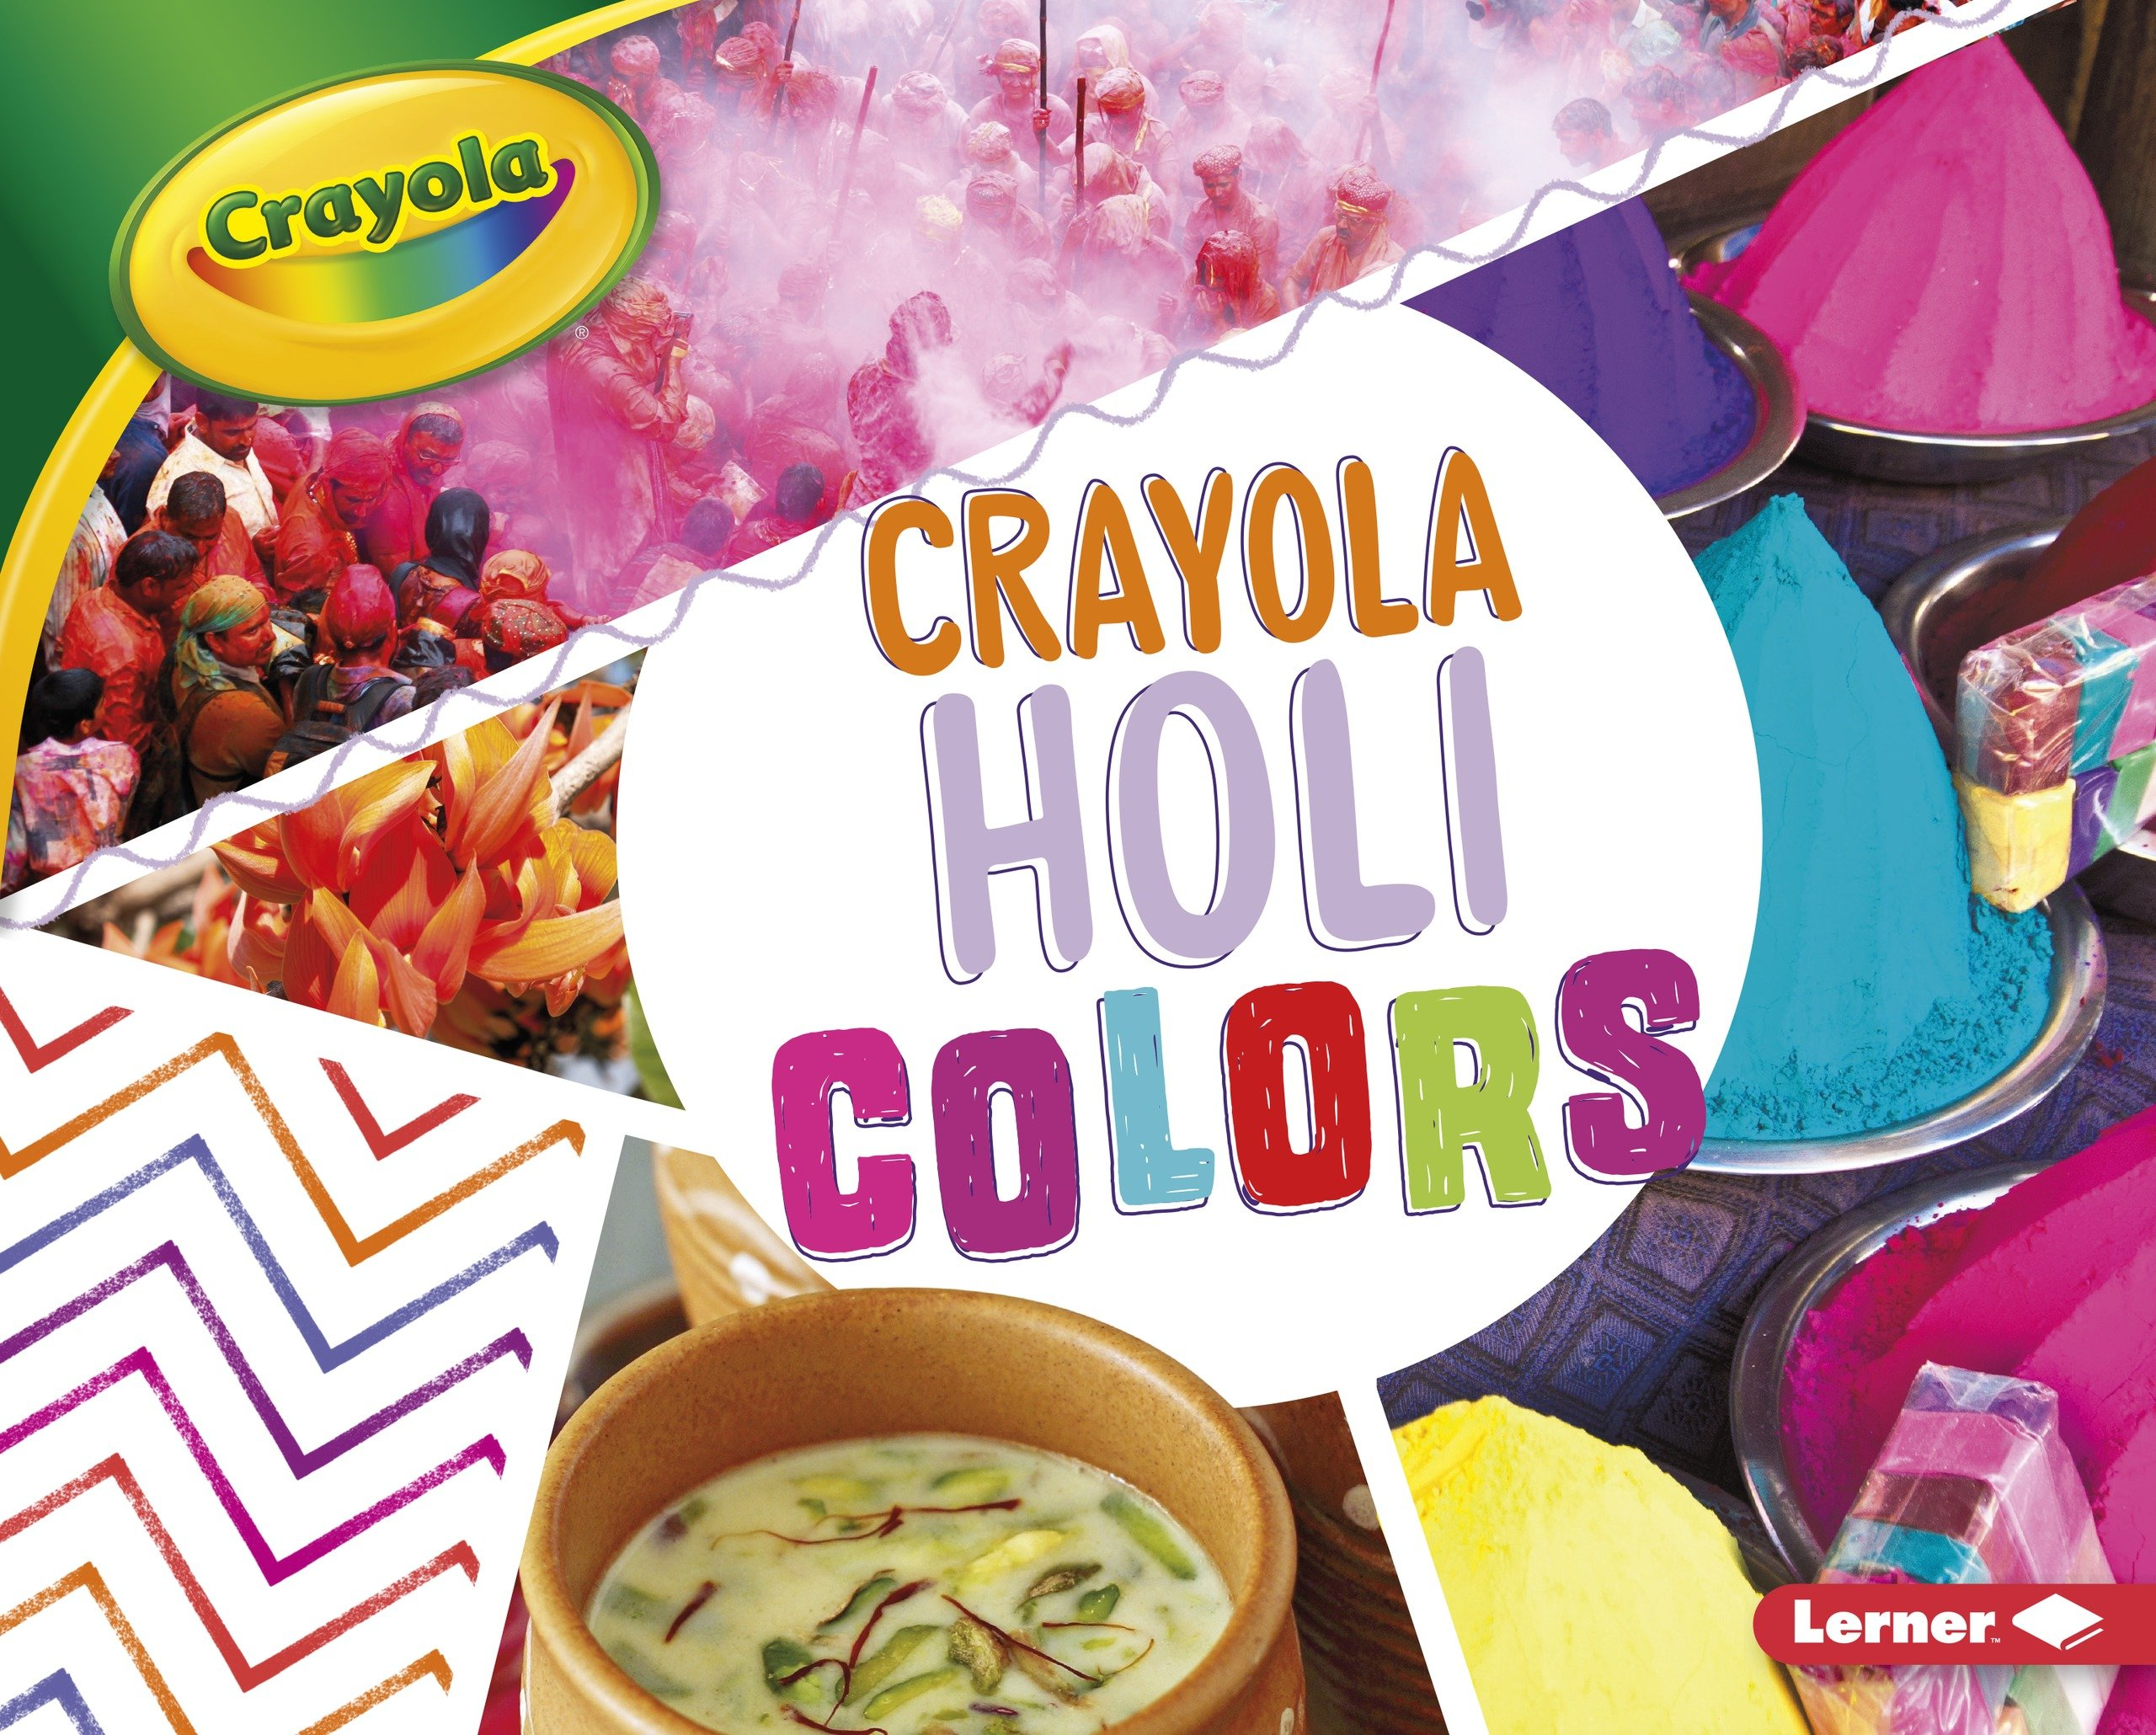 Crayola Holi Colors (Crayola Holiday Colors) by Lerner Pub Group (Image #1)